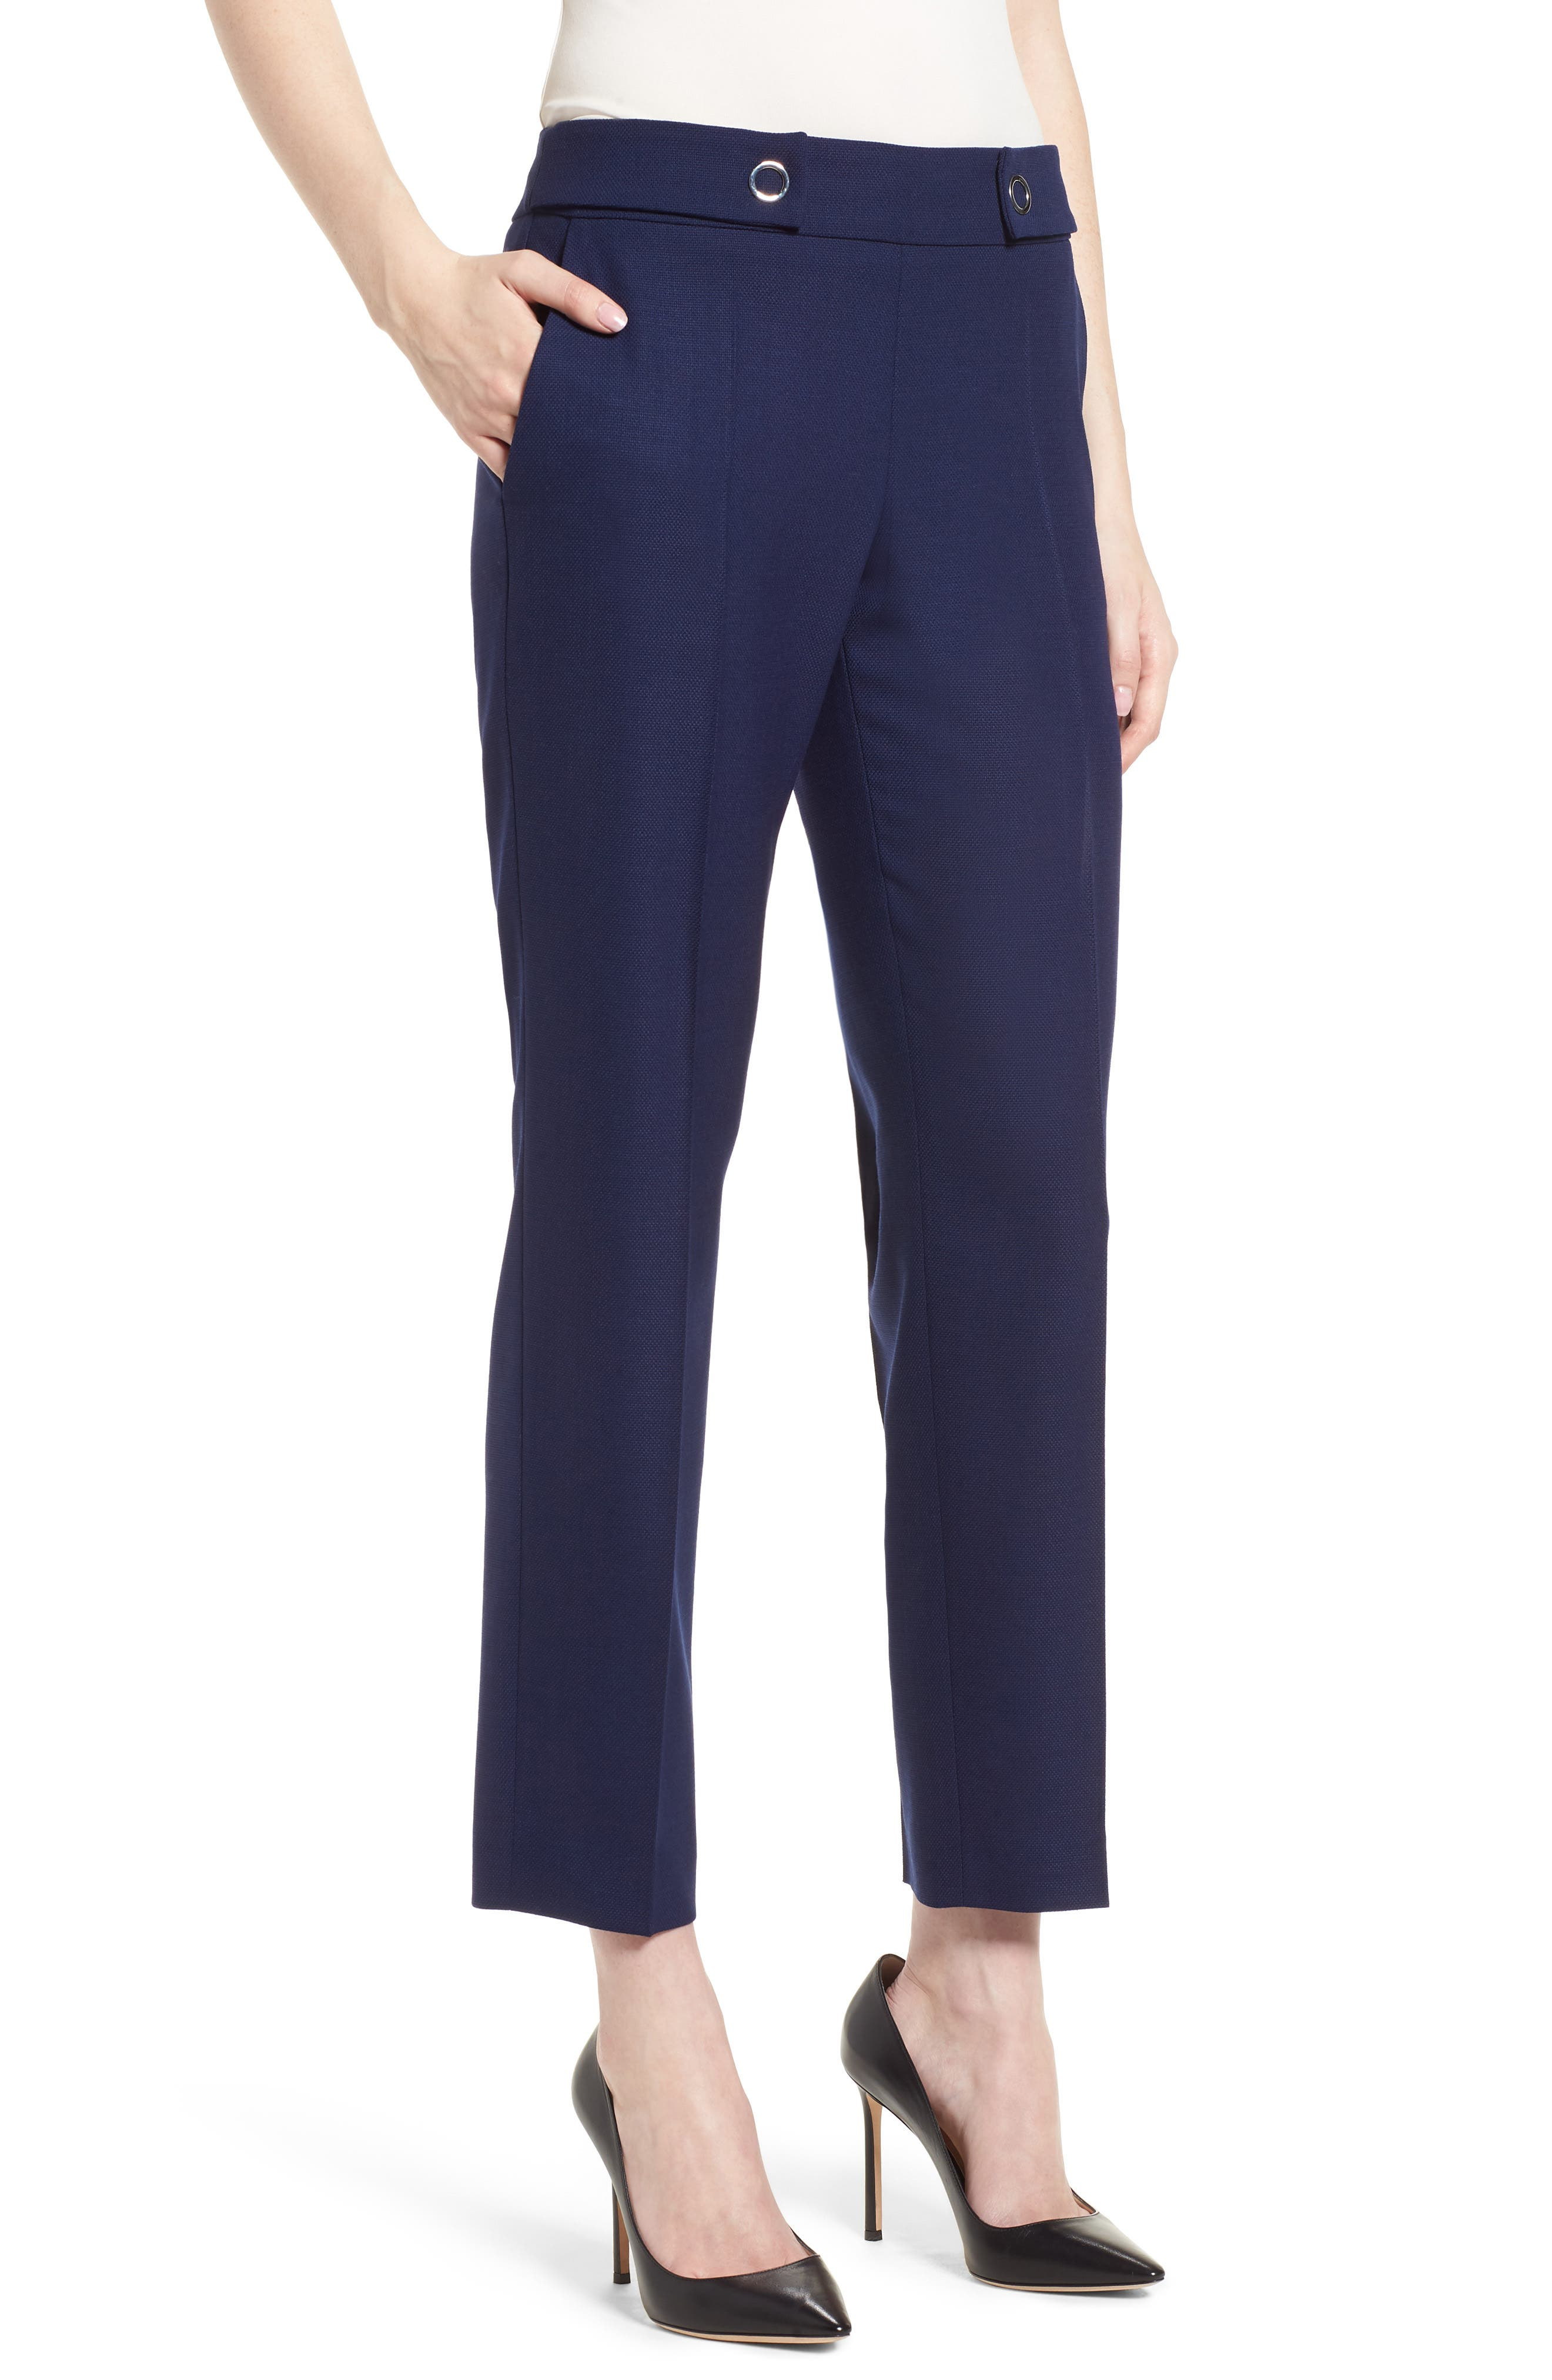 Tibalena Textured Stretch Wool Suit Pants,                         Main,                         color, 425